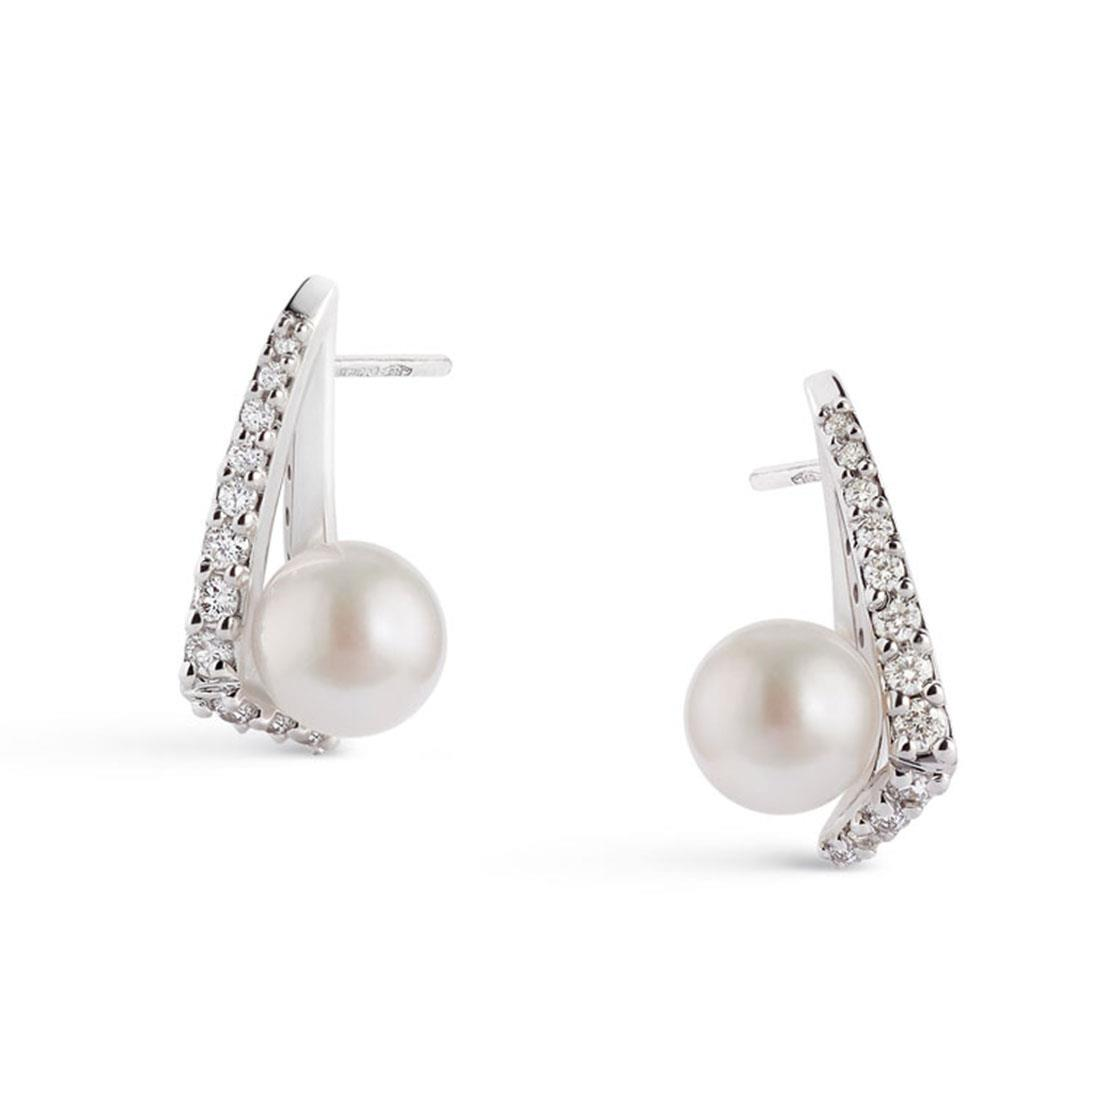 18 kt white gold earrings with 7,5/8 mm Akoya pearls and 0,41 diamonds